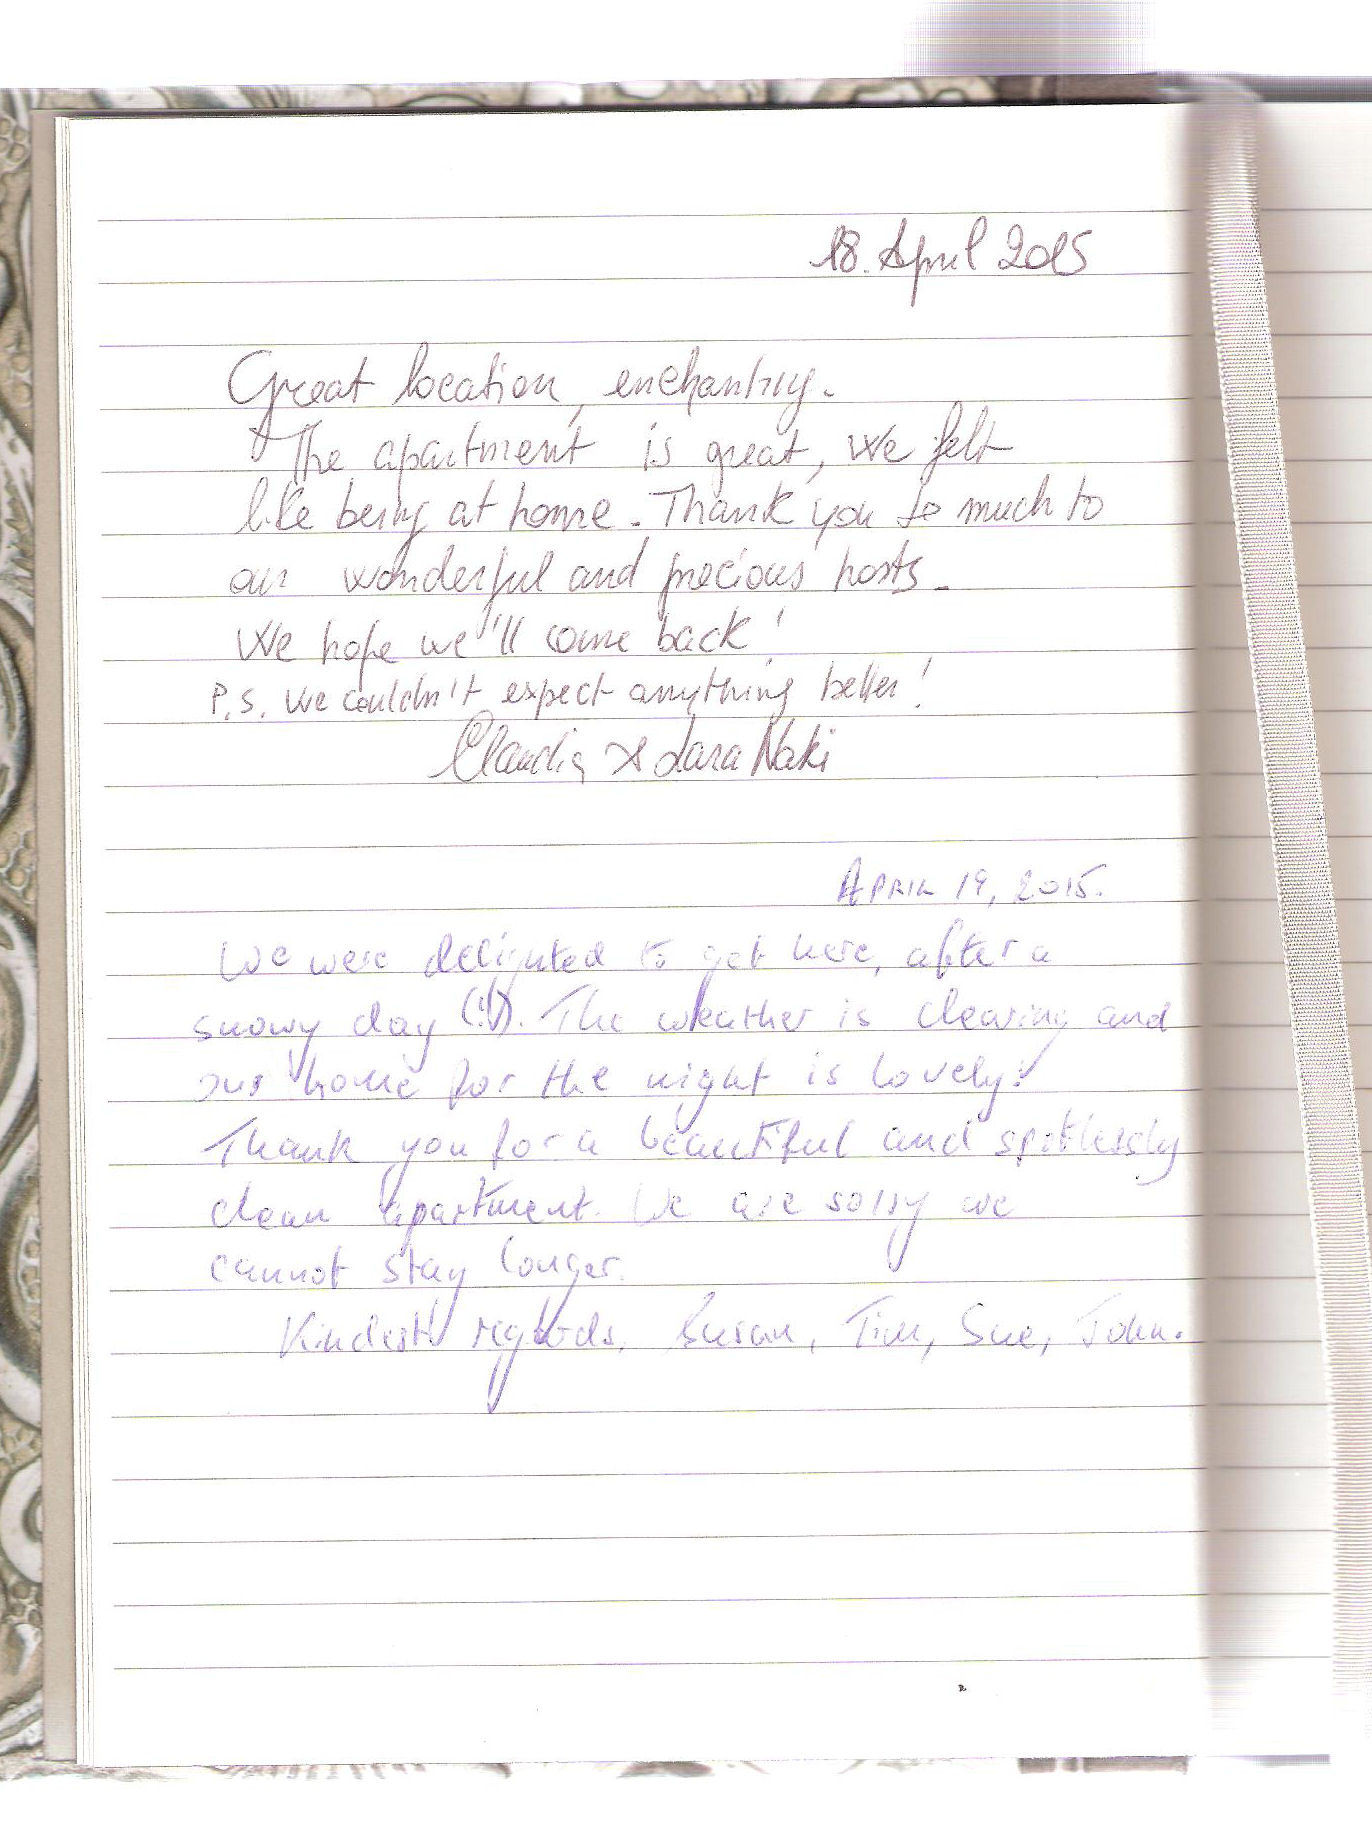 guestbook-page-008